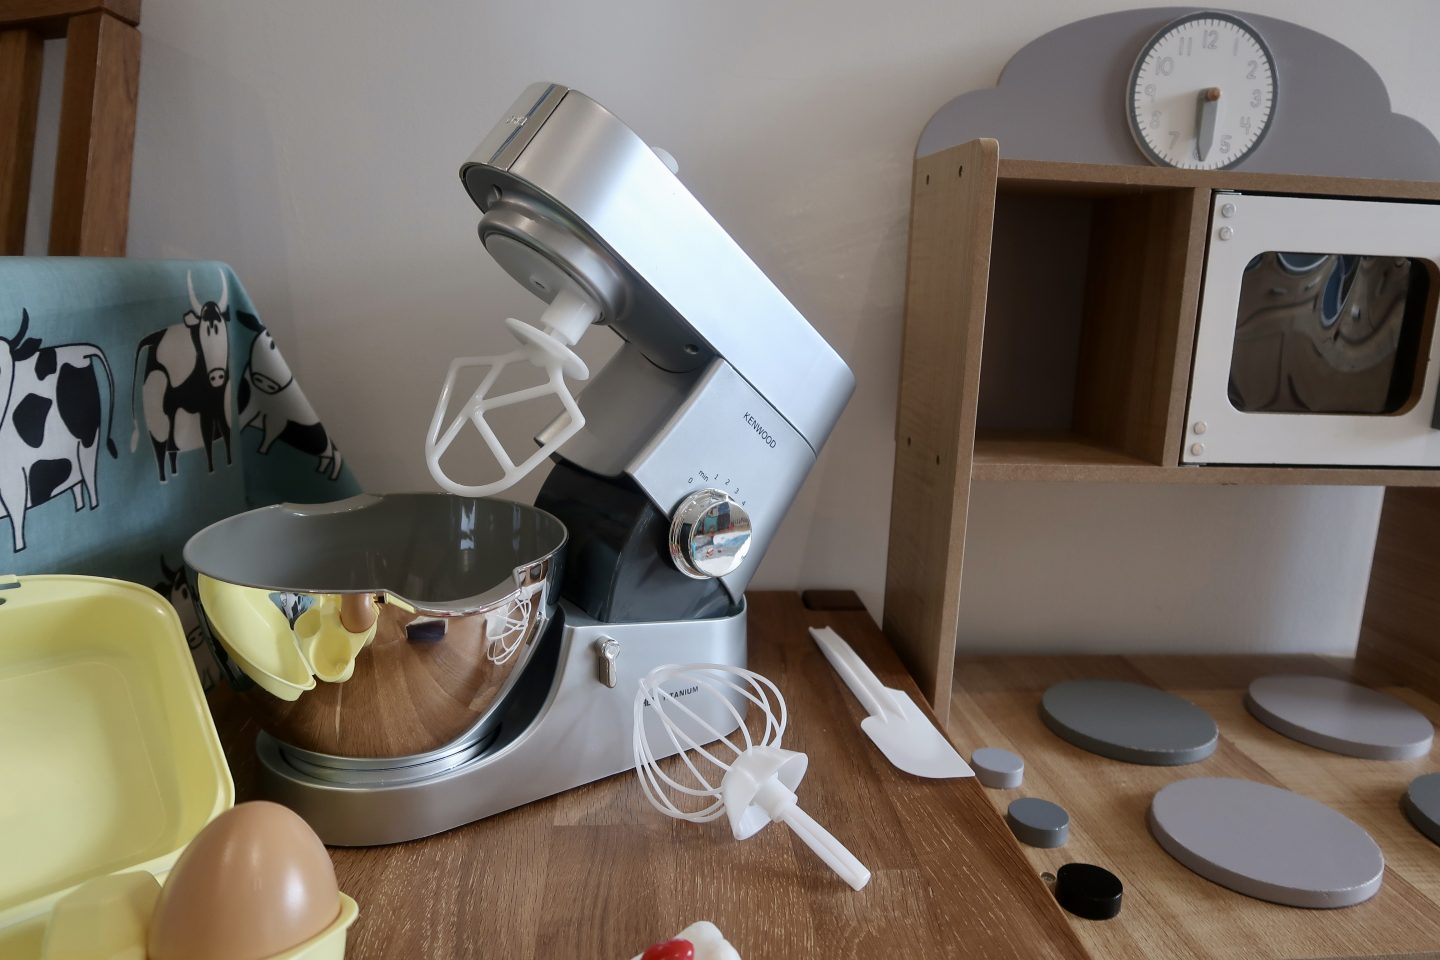 Toy food mixer in silver, surrounded by accessories